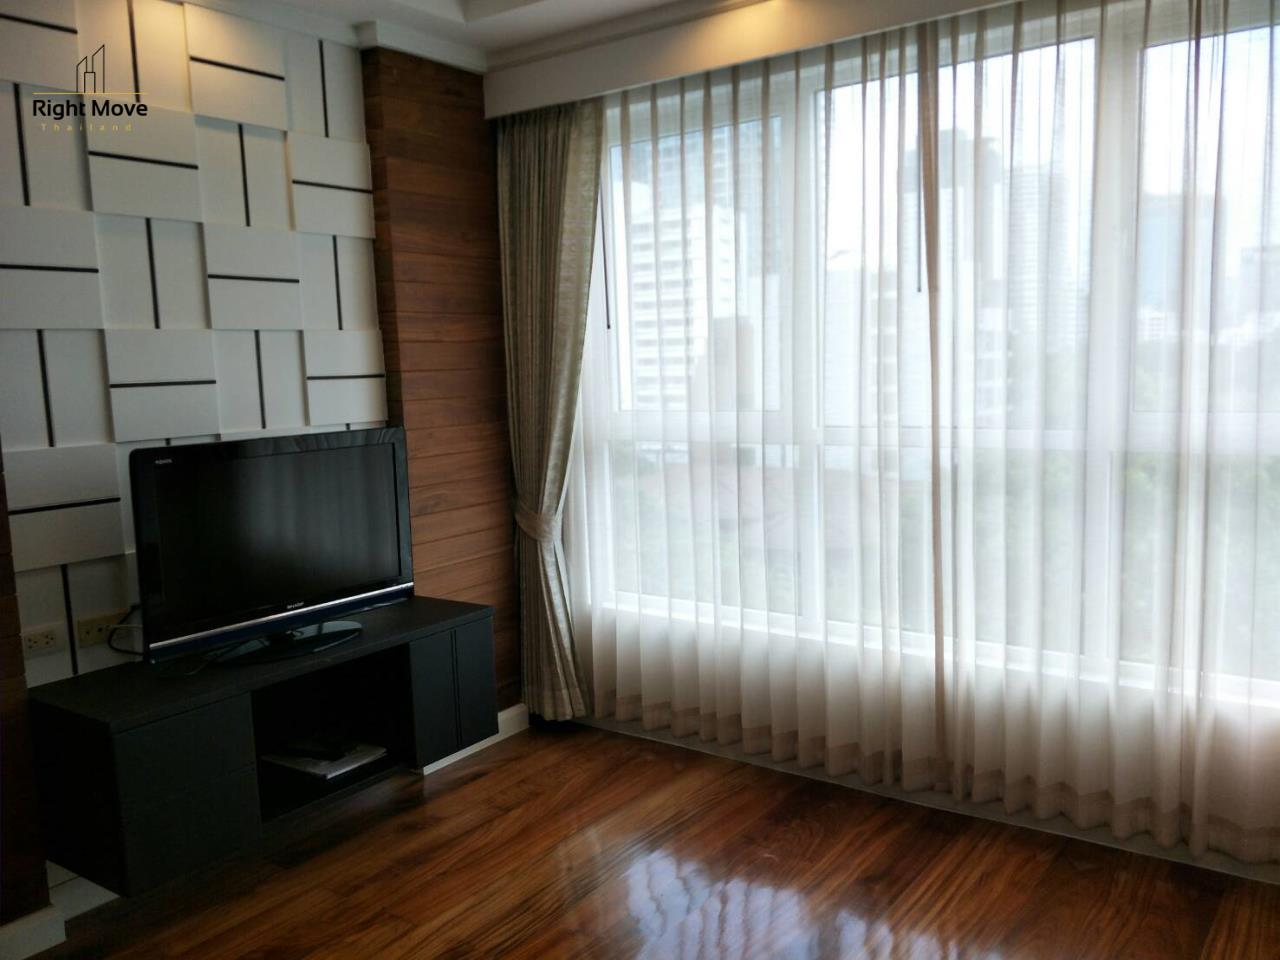 Right Move Thailand Agency's CS2431 Avenue 61 For Sale 14,300,000 THB 2 Bedrooms 102 Sqm 7